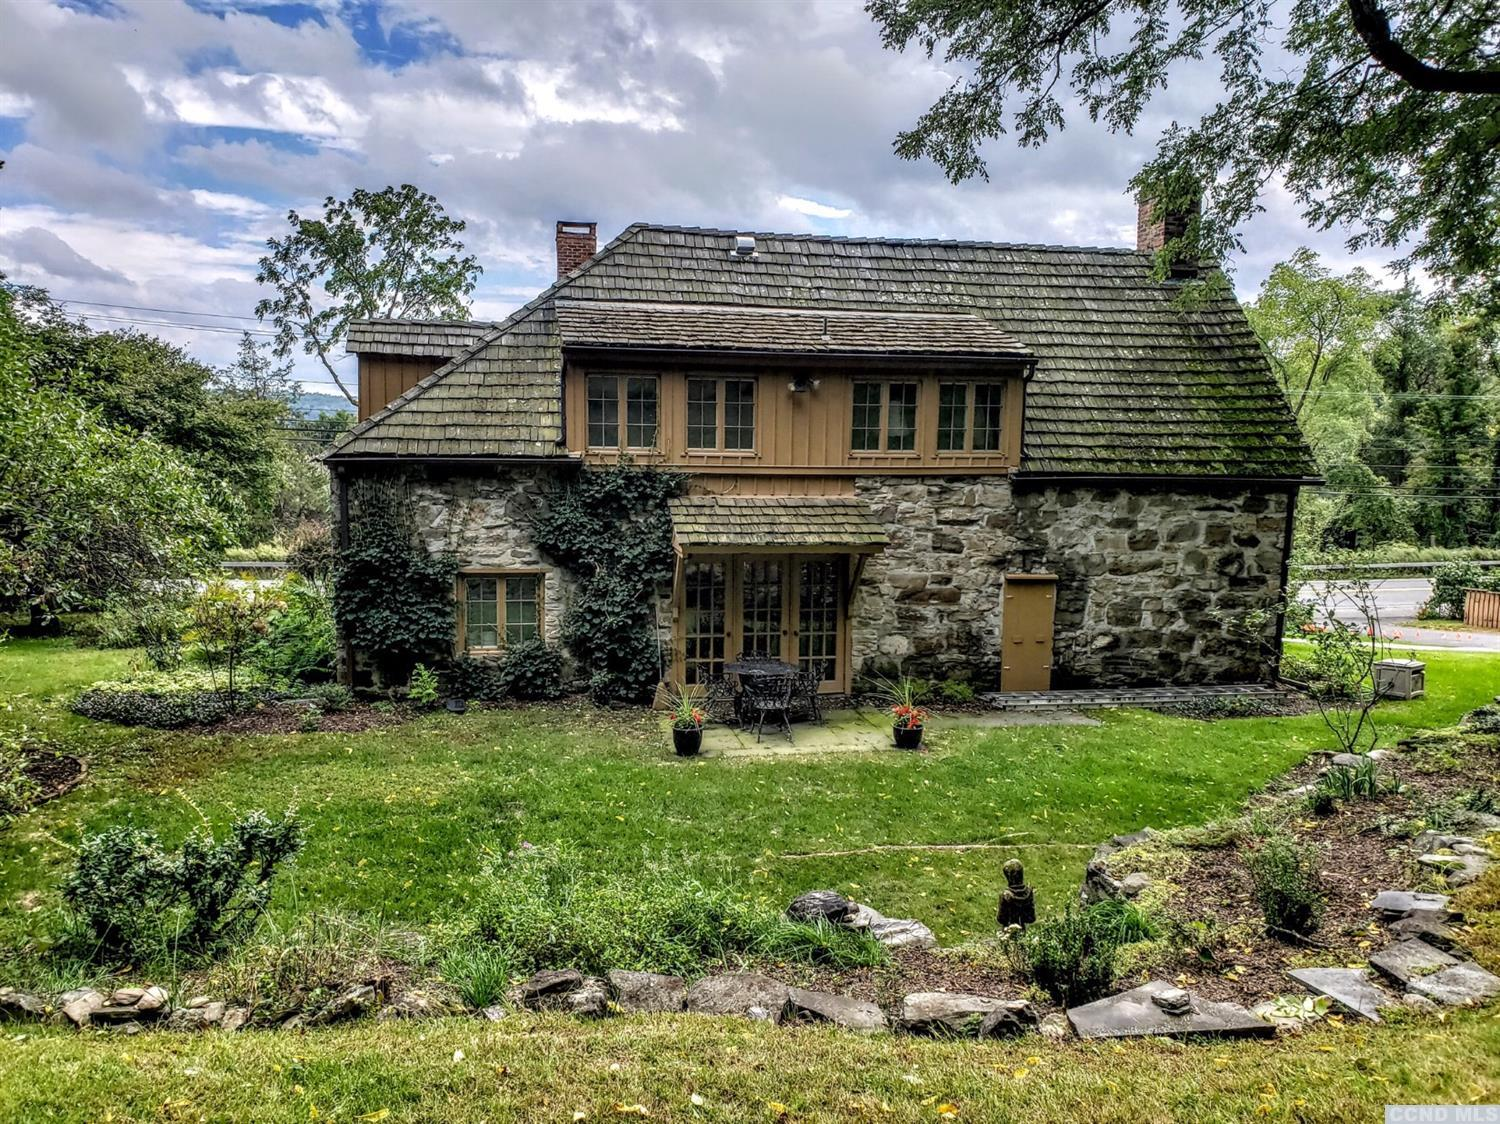 <i style=><b>BUNT HOUSE built in 1695 this is one of Columbia County's oldest stone houses with 4.25 acres located on </b><span style=font-size: 13.3333px;=><b>Rte. 9G only 1</b></span><b>mile from Warren St. and the</b><span style=font-size: 13.3333px;=><b>AMTRAK</b></span><b> STATION in Hudson . Perfect as a home or has great commercial potential.</b></i><div><i 10pt;=style=font-size:><b>Beautiful wide board oak & pine floors, exposed interior stone walls, chestnut beams, den,galley kitchen,formal sitting room,</b></i><i 10pt;=style=font-size:><b>2 wood burning fireplaces,</b></i><i 10pt;=style=font-size:><b>built in bookcases, </b><span style=font-size: 13.3333px;><b>original</b></span><b>galley kitchen, stunning master with chimney / ca